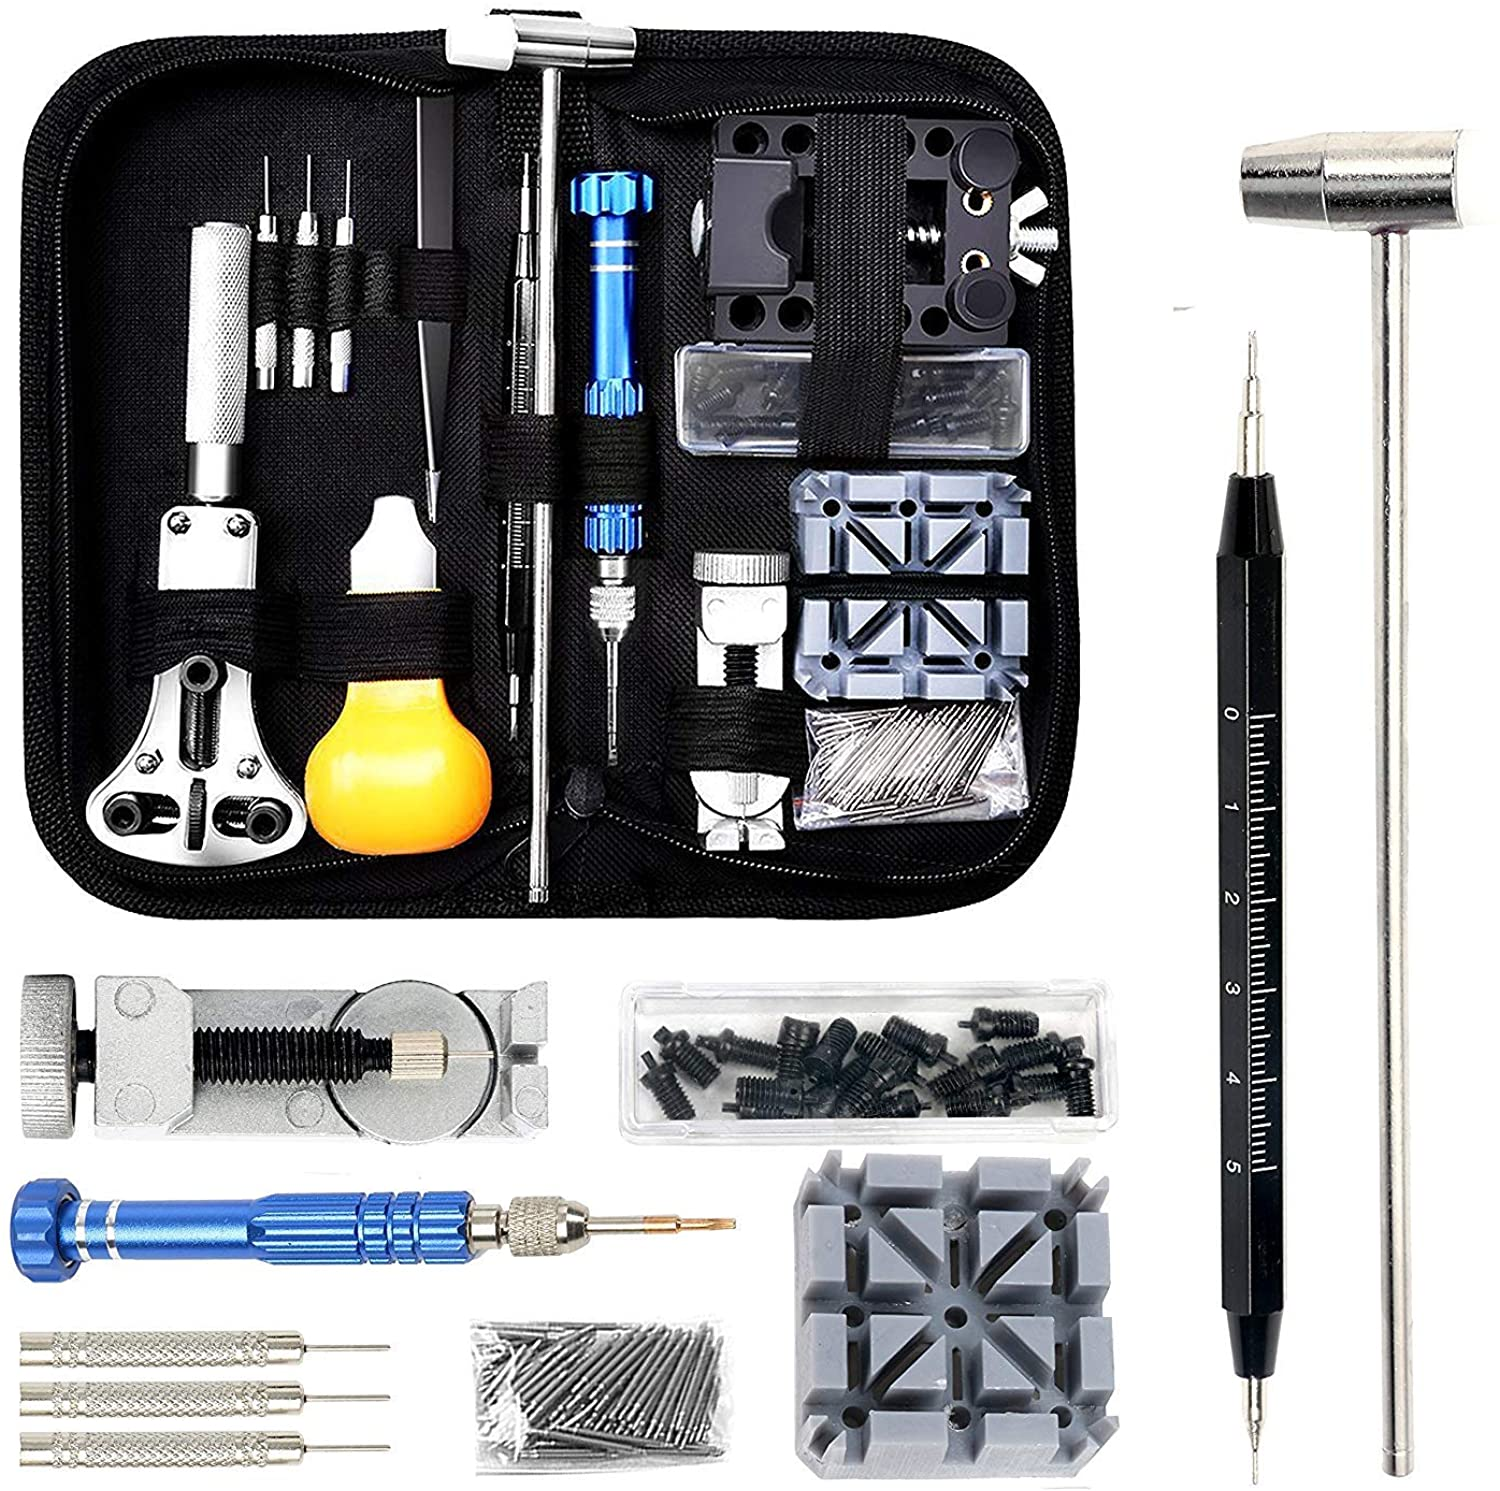 Watch Repair Set Professional Spring Bar Tool Set Watch Battery Replacement Tool Kit Watch Band Link Pins with Carrying Case